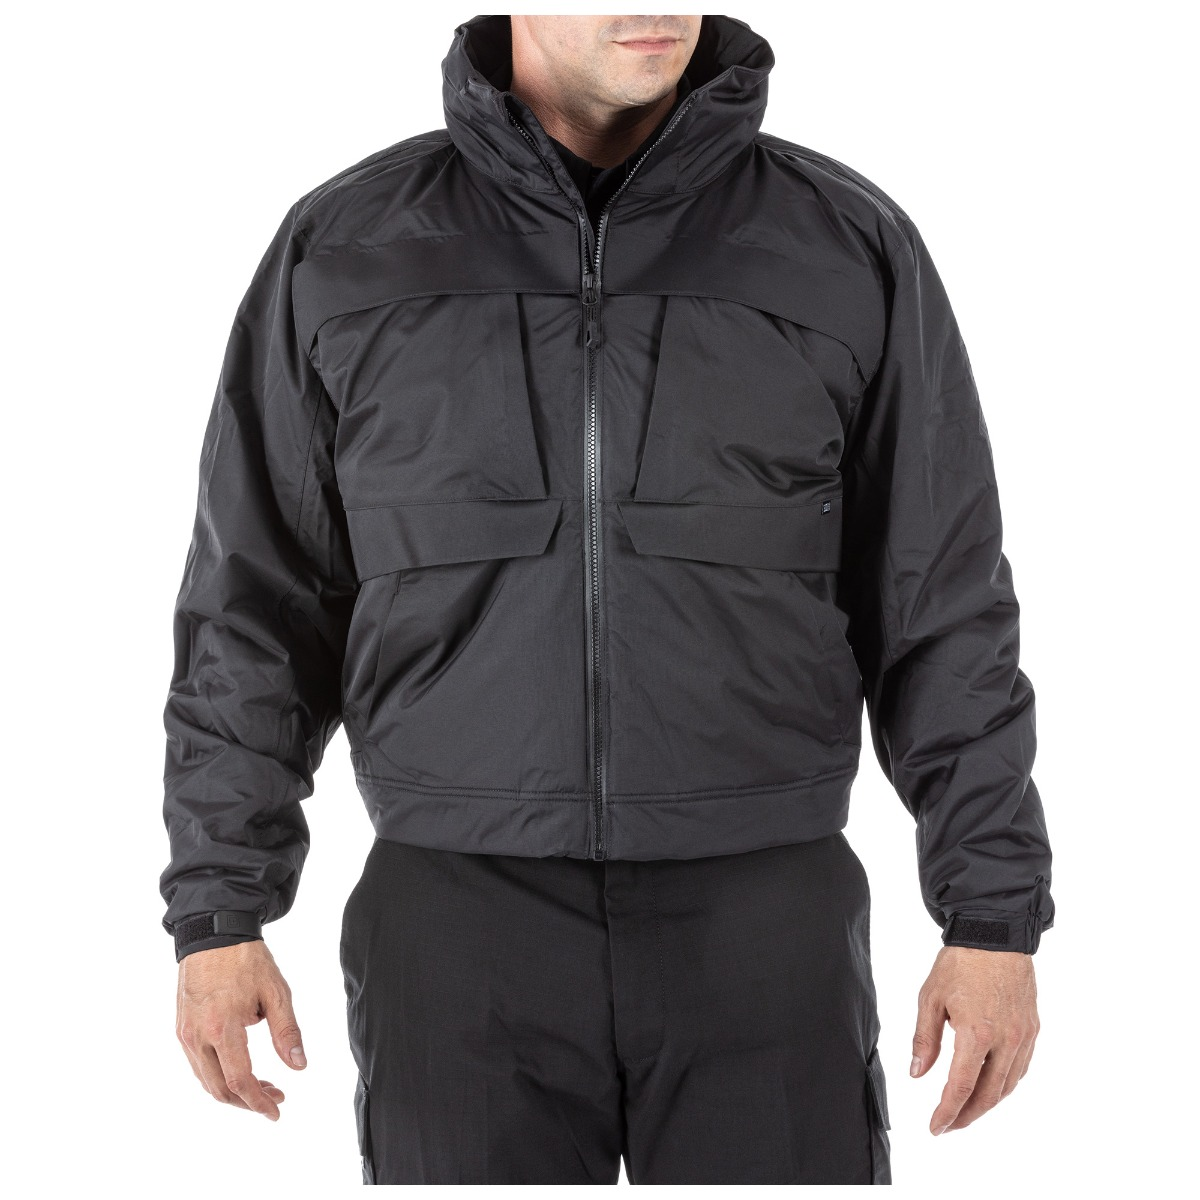 5.11 Tactical Men Tempest Duty Jacket (Black)